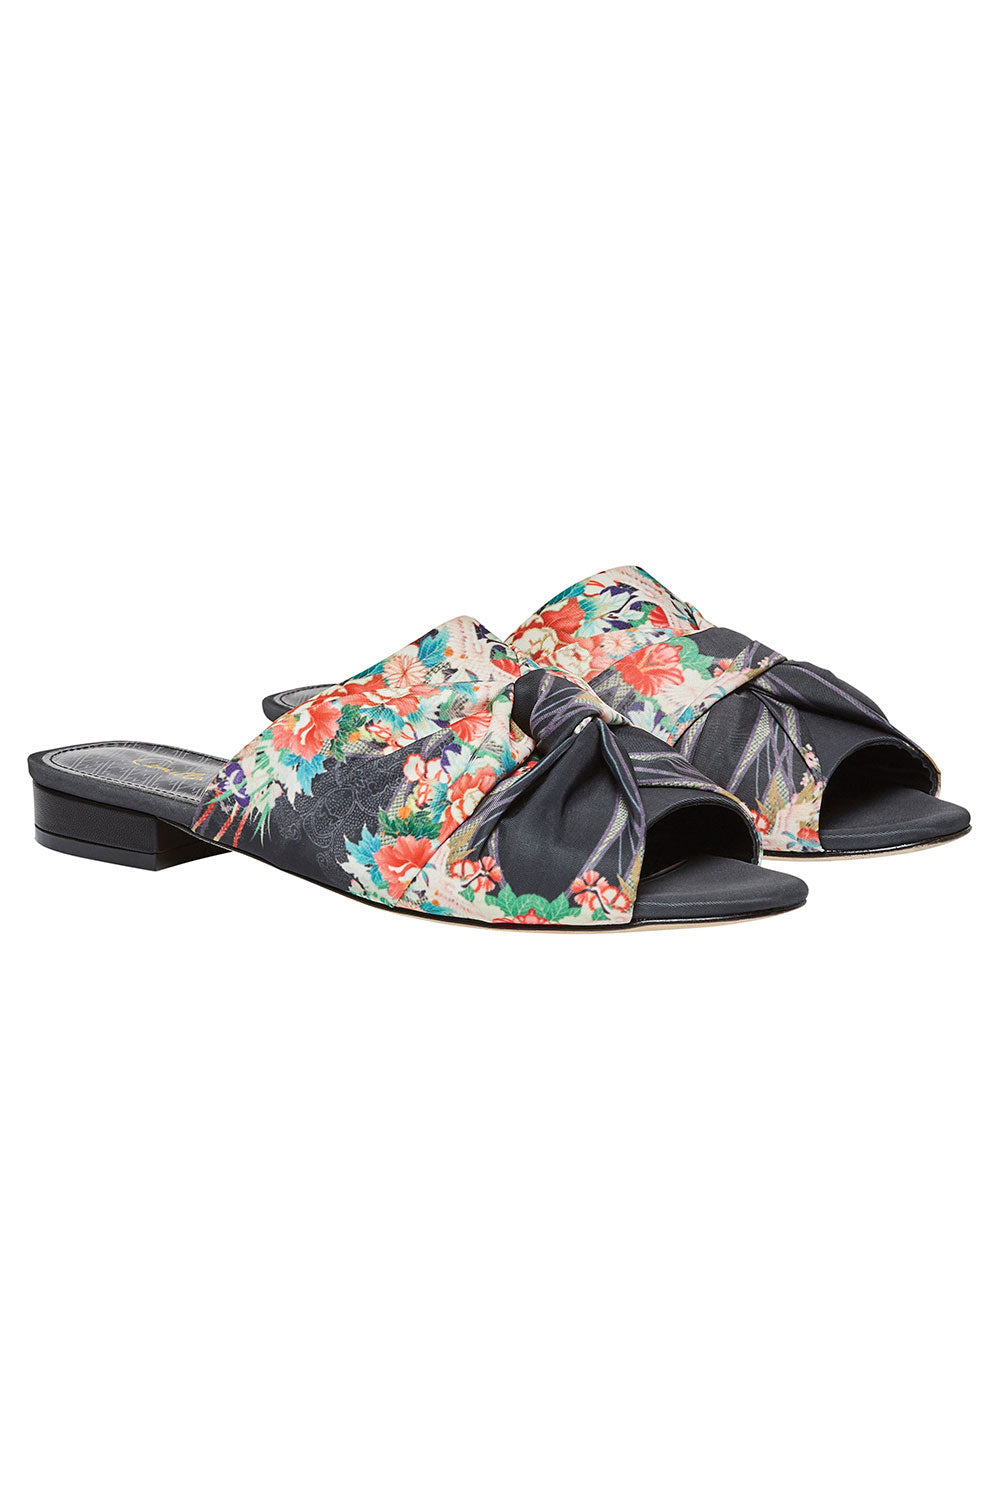 CAMILLA QUEEN OF KINGS OBI TIE SLIPPER